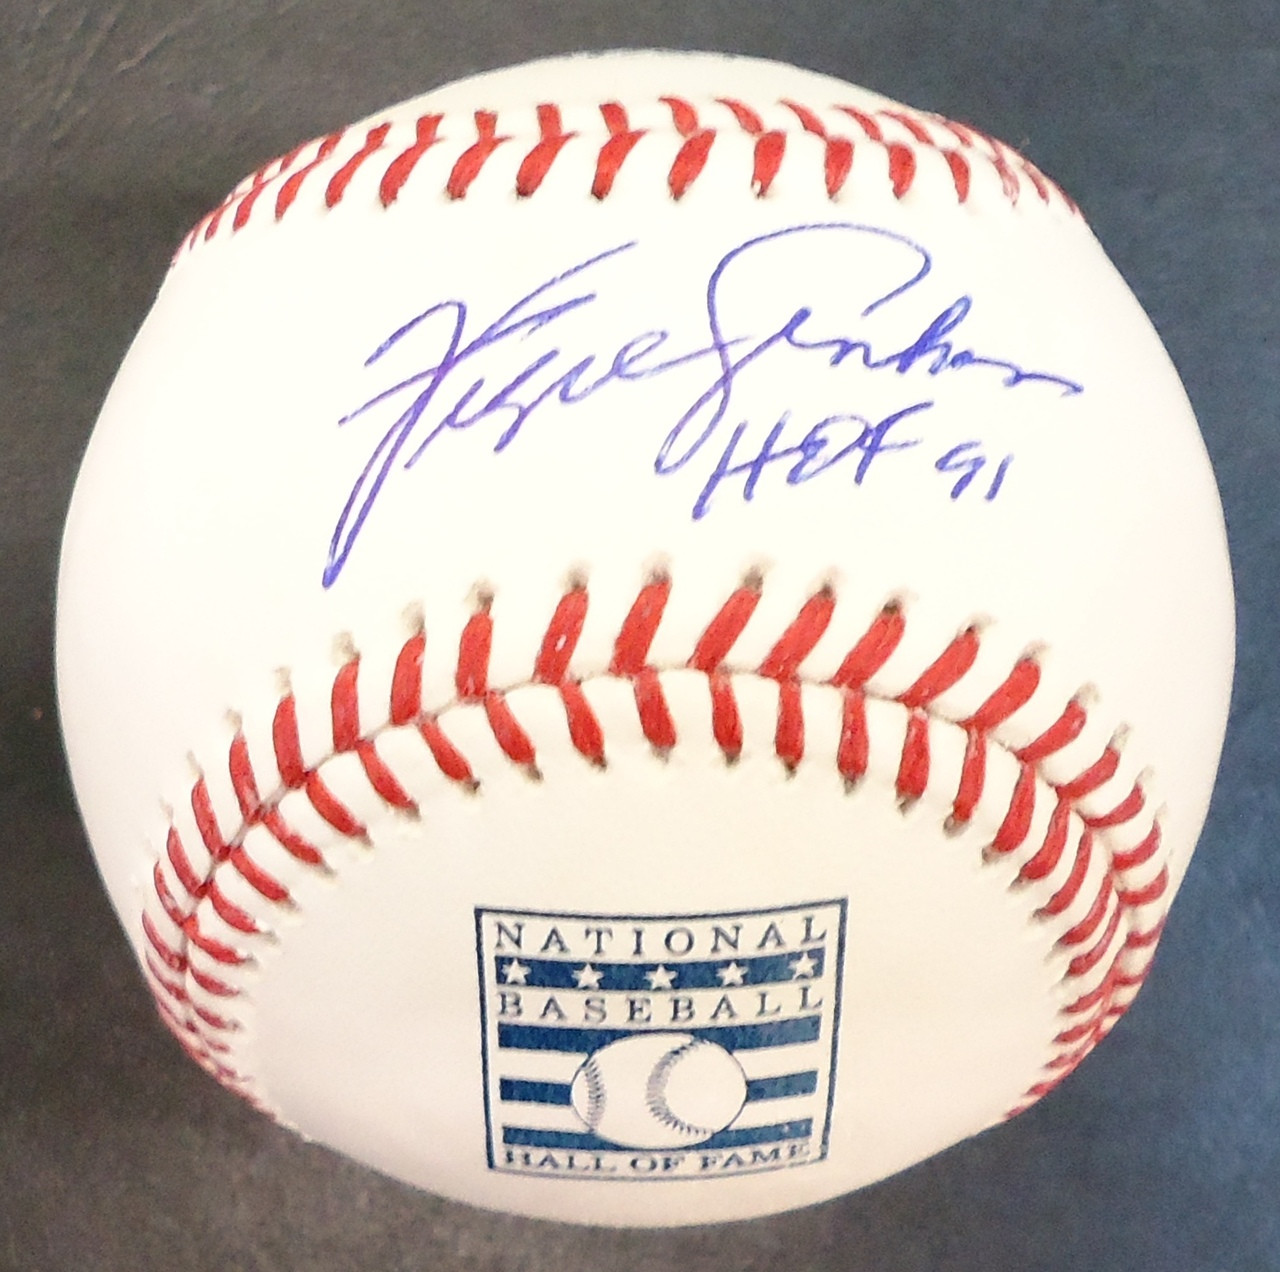 367b3b1a263 ... Fergie Jenkins Autographed Baseball - Official Hall of Fame Ball  Inscribed